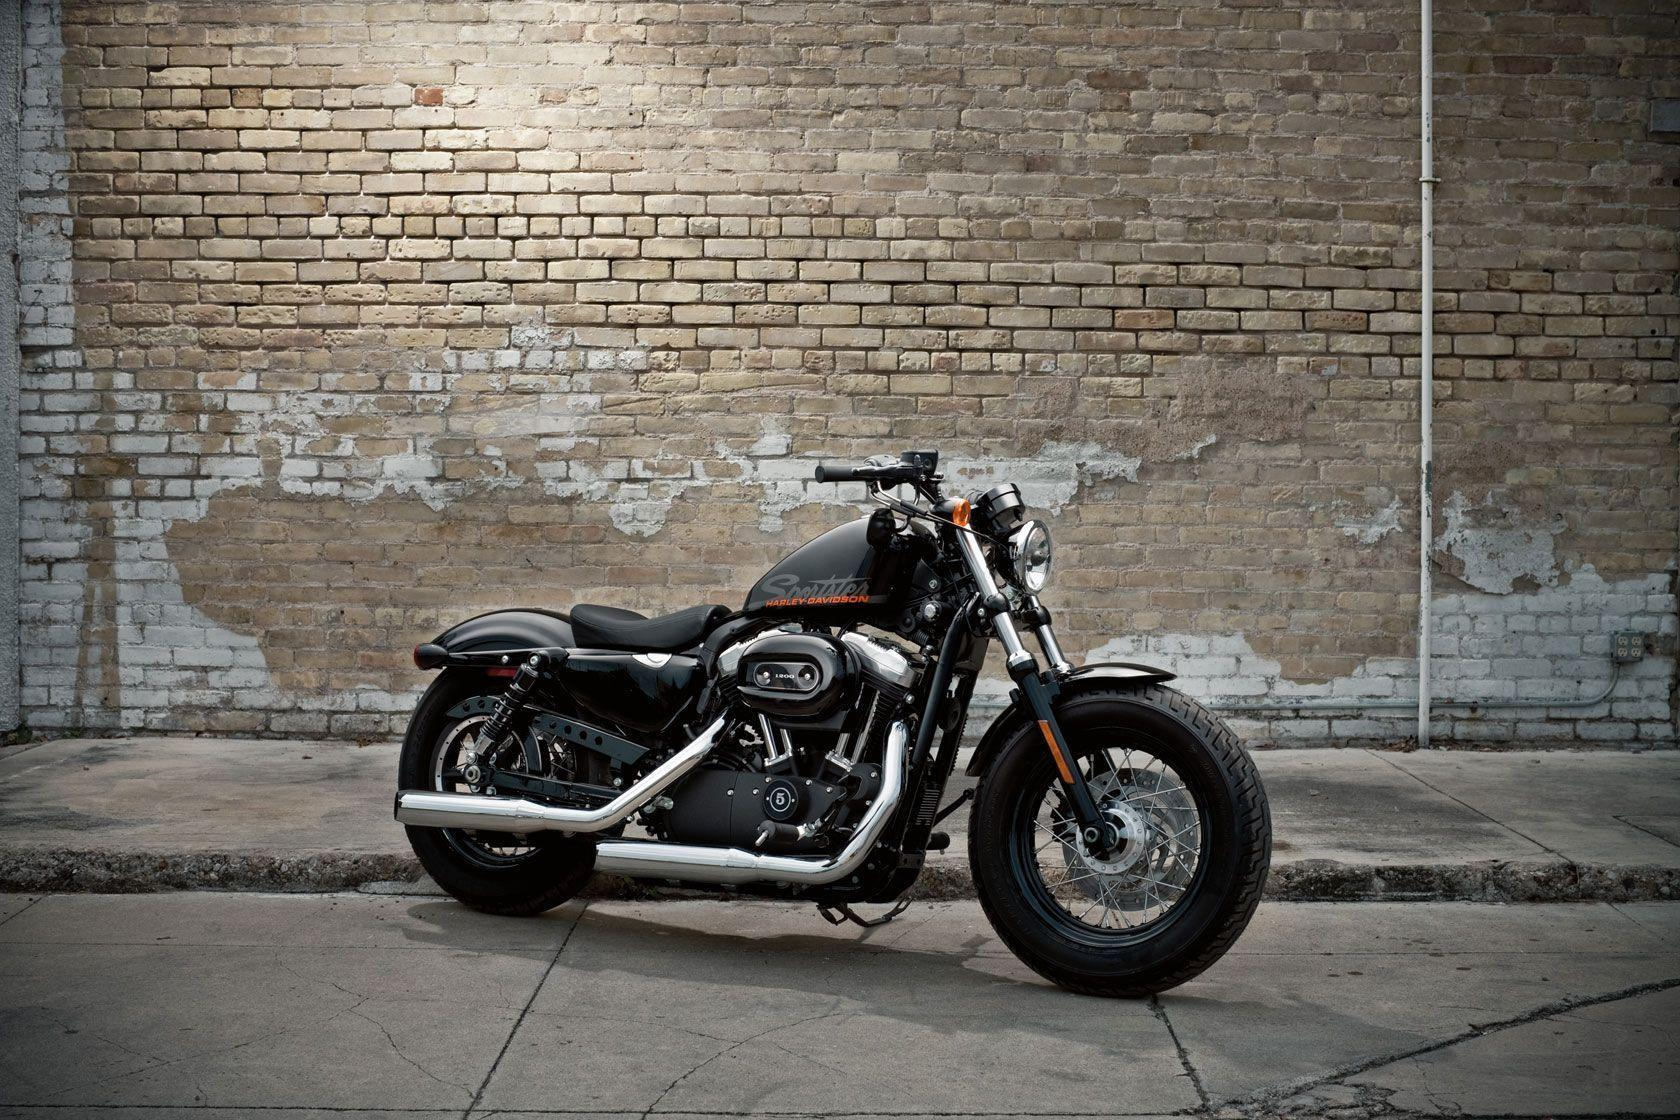 2010 Harley Davidson Sportster Forty Eight Wallpaper